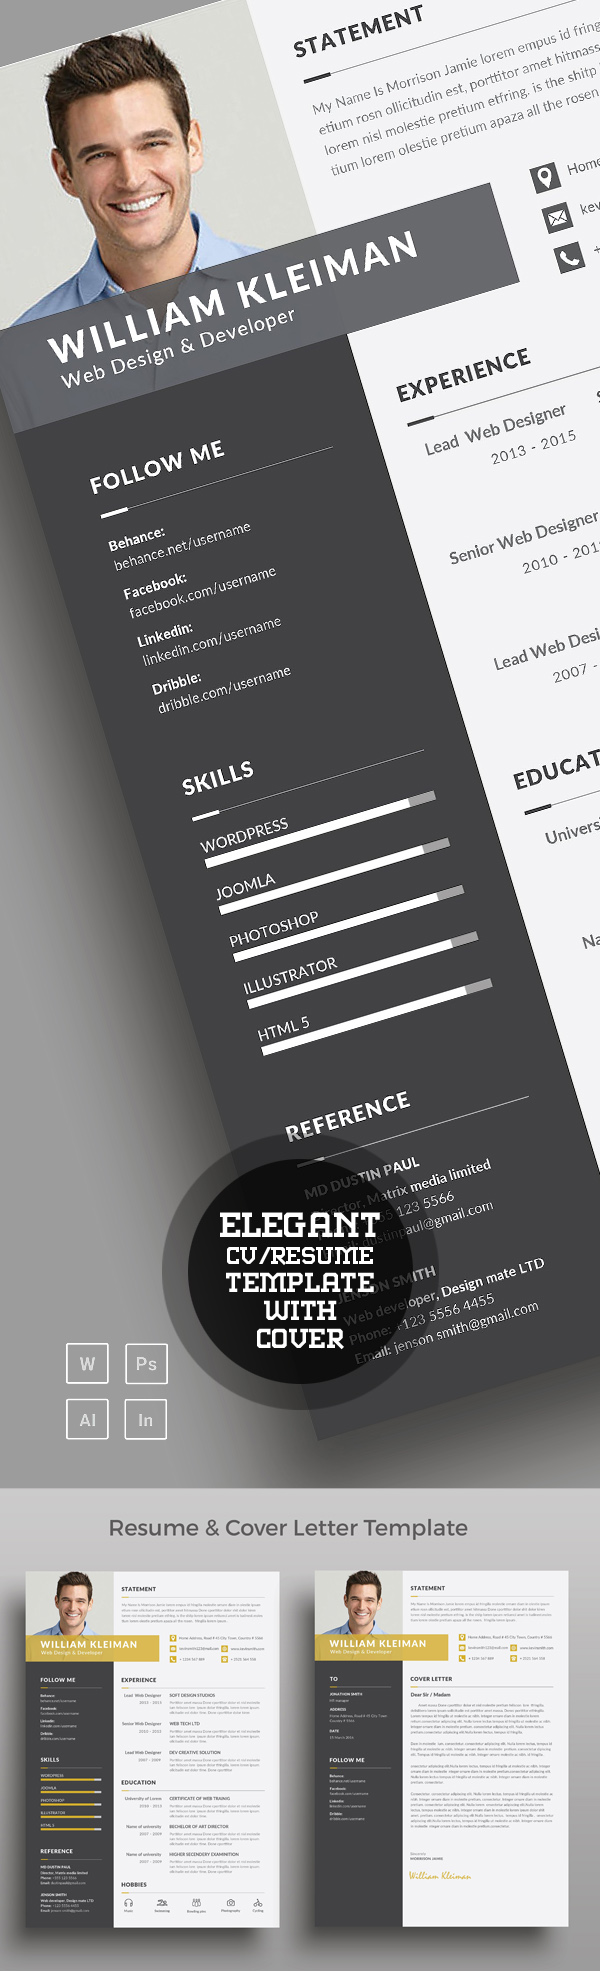 50 Best Resume Templates For 2018 - 22